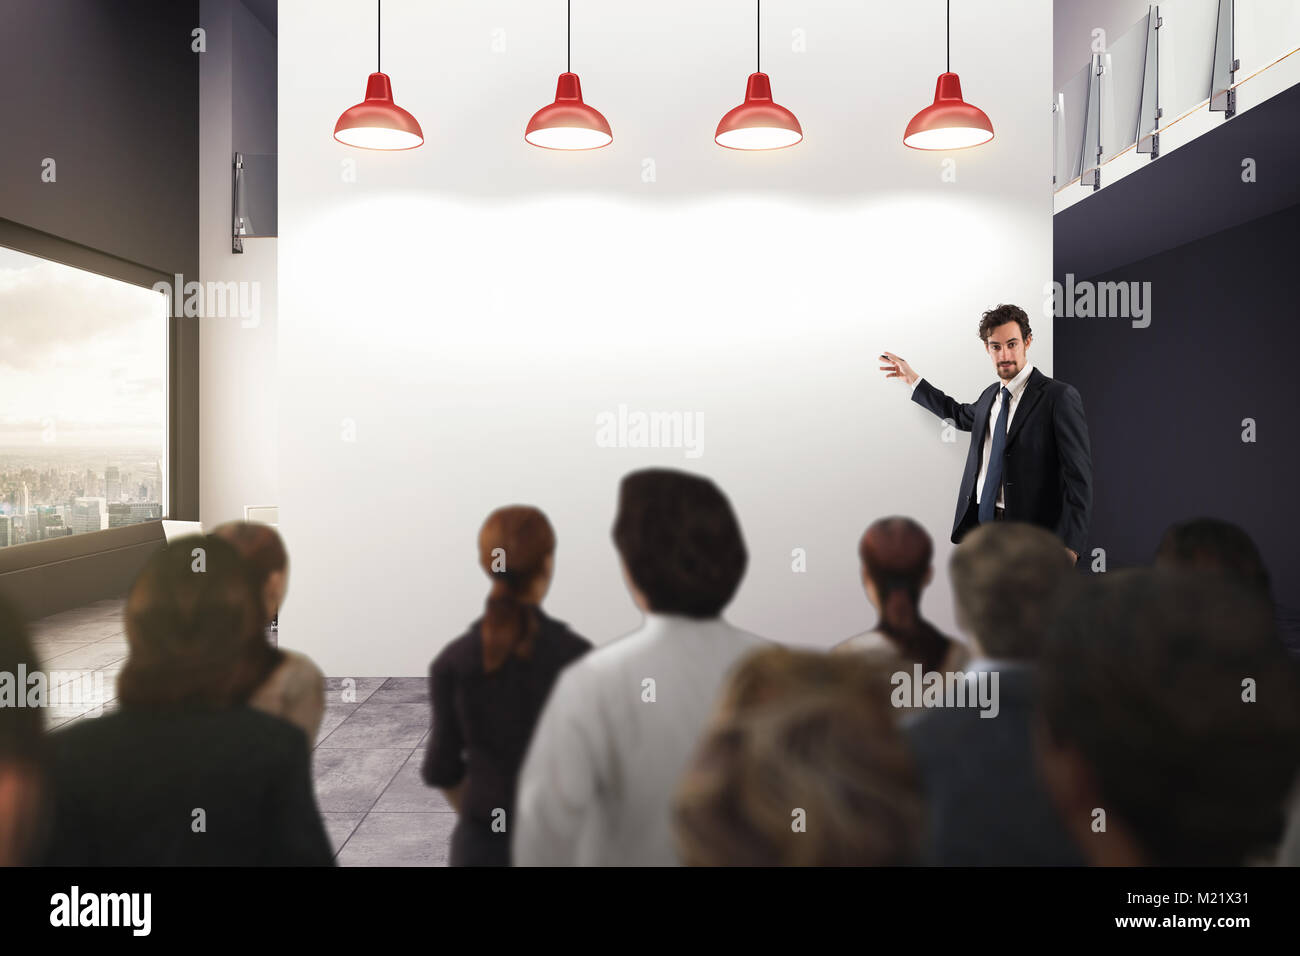 Business analysis in an office. 3D Rendering - Stock Image